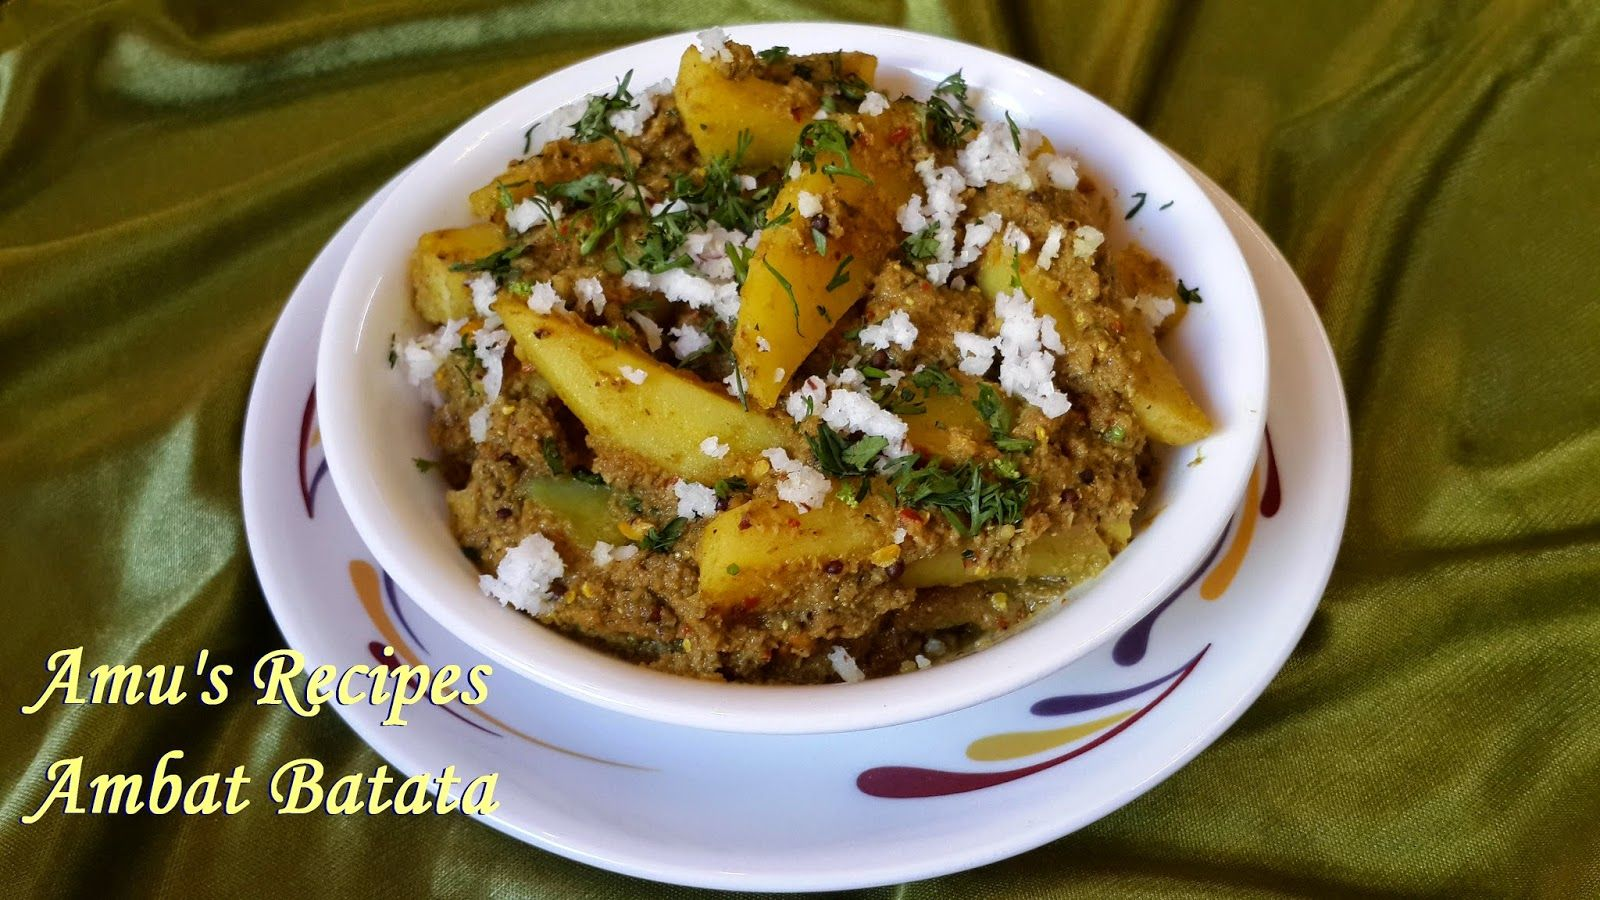 Amus recipes ambat batata delicious pinterest veg recipes ambat batata literally means tangy potato this is again a gsb saraswat brahmin recipe that is made during festivities forumfinder Gallery